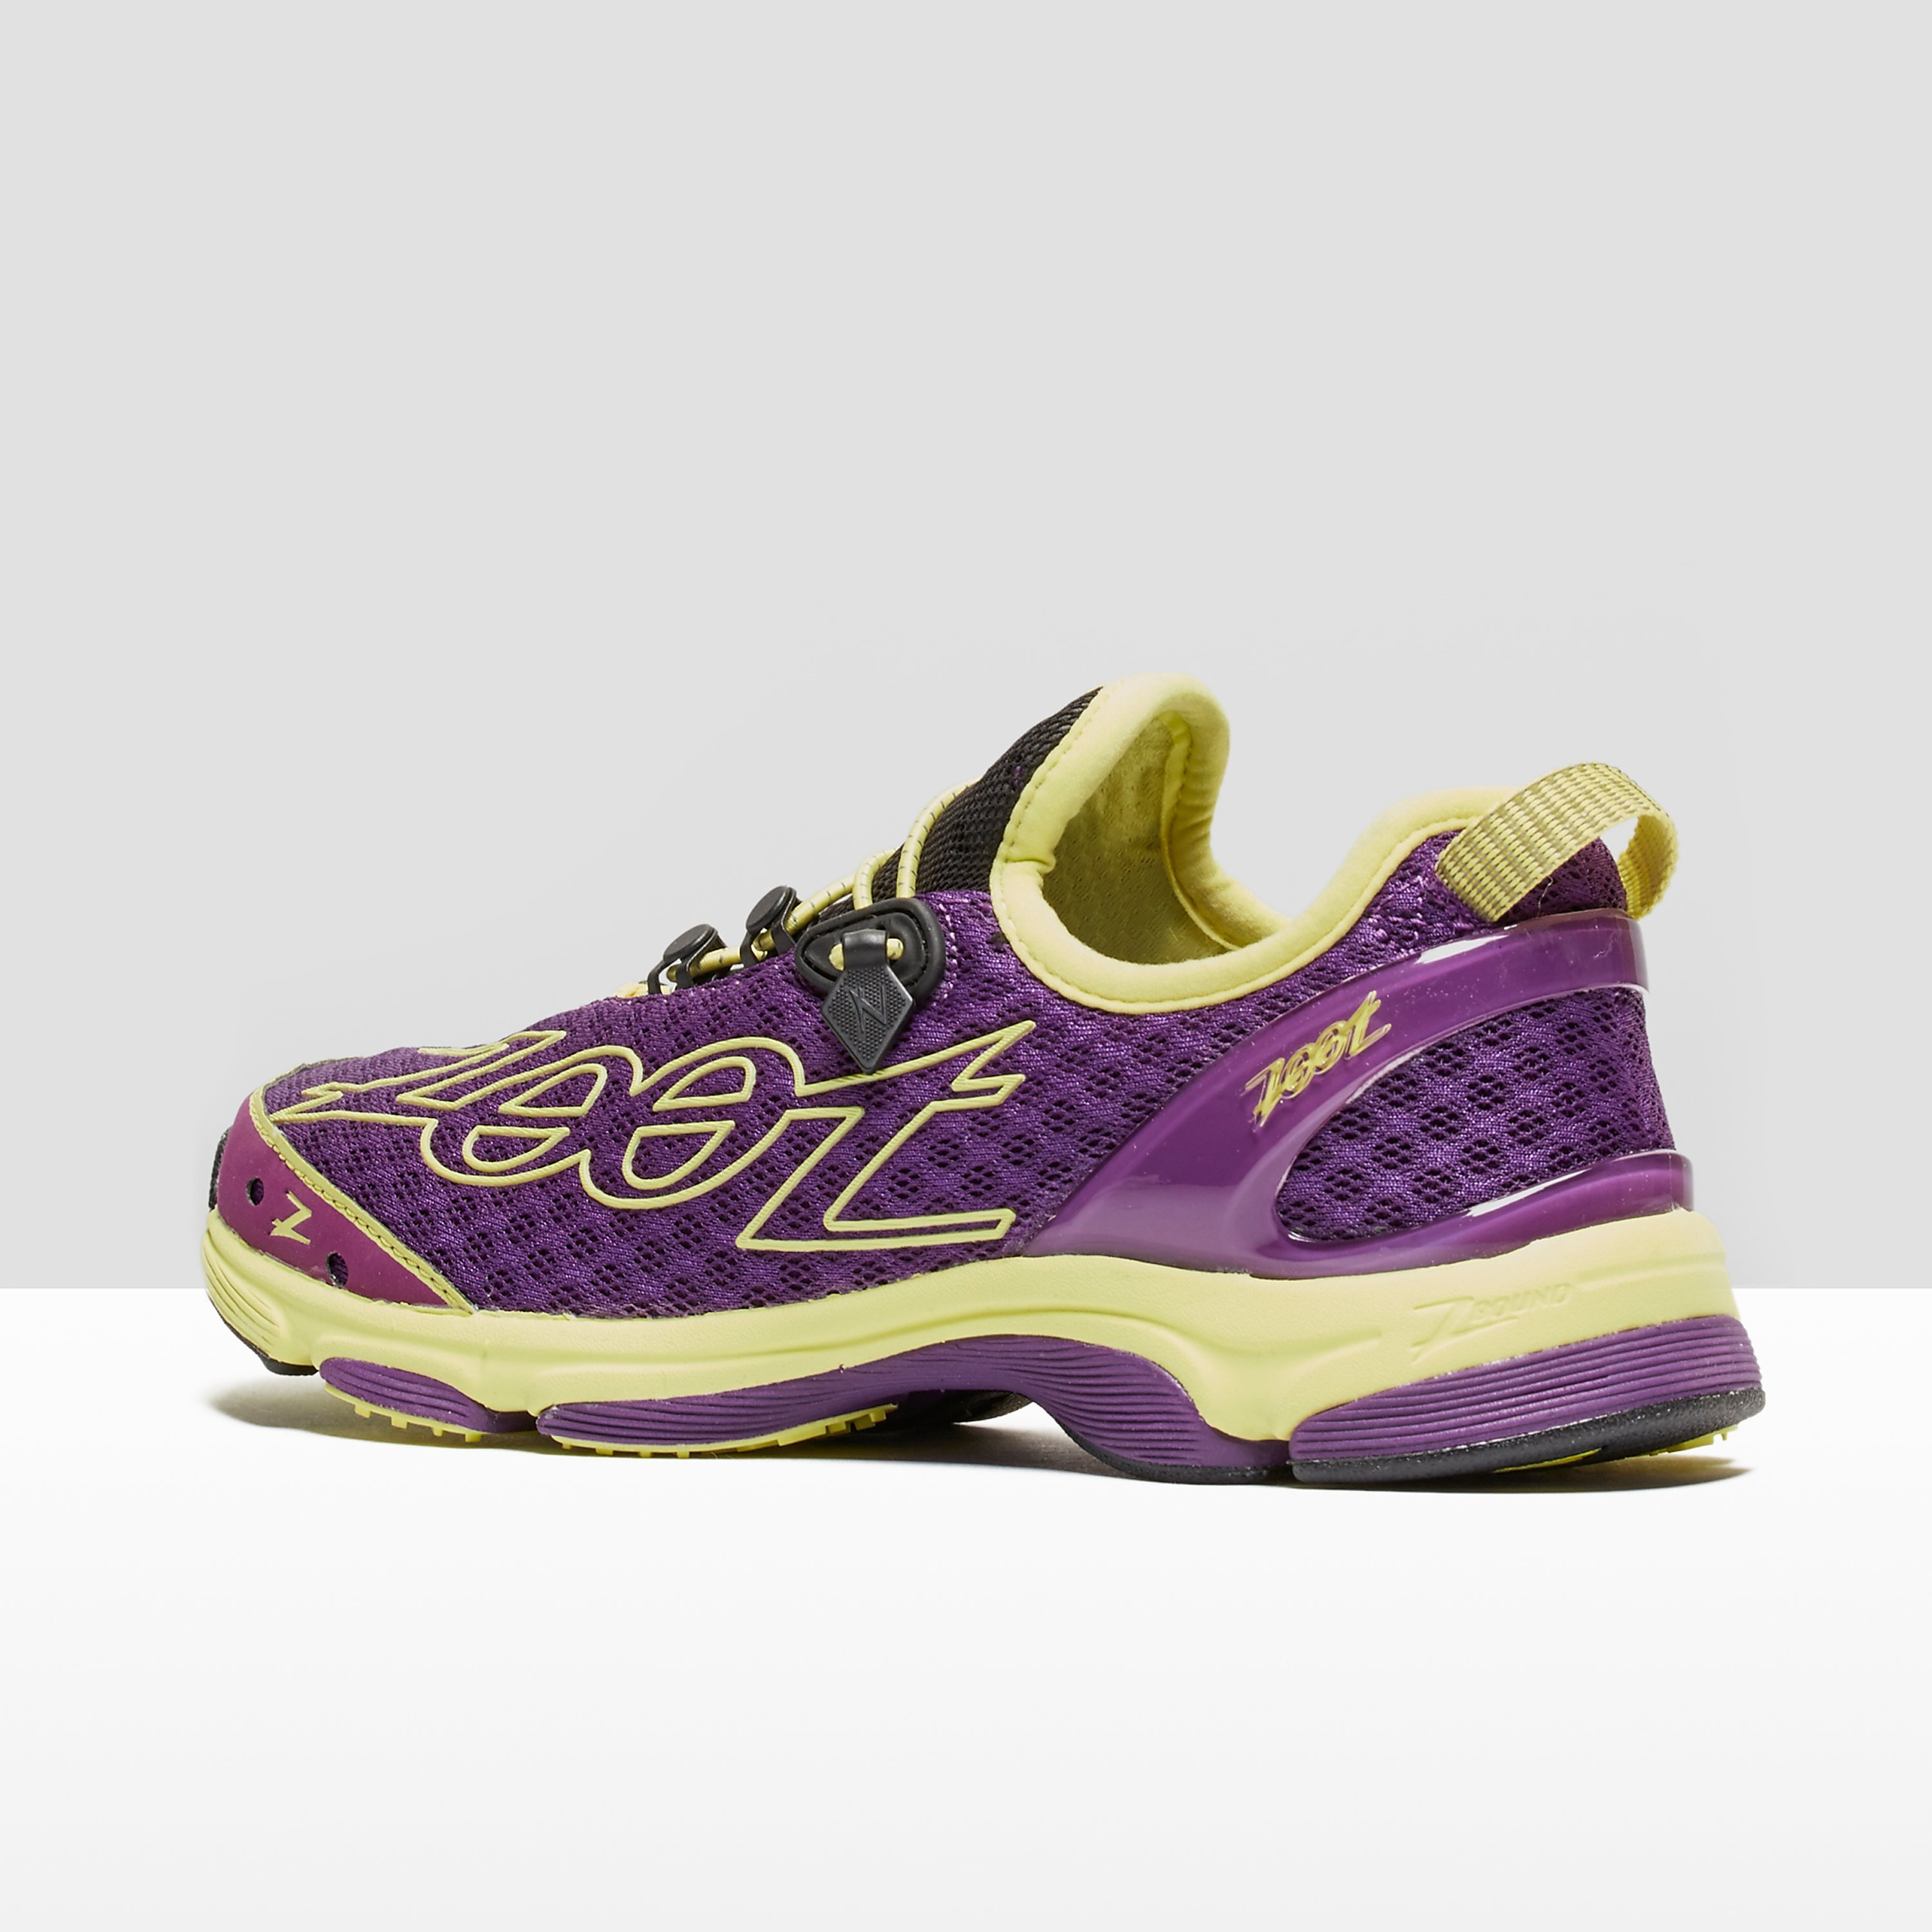 Zoot Ultra 7.0 Woimen's Running Shoe